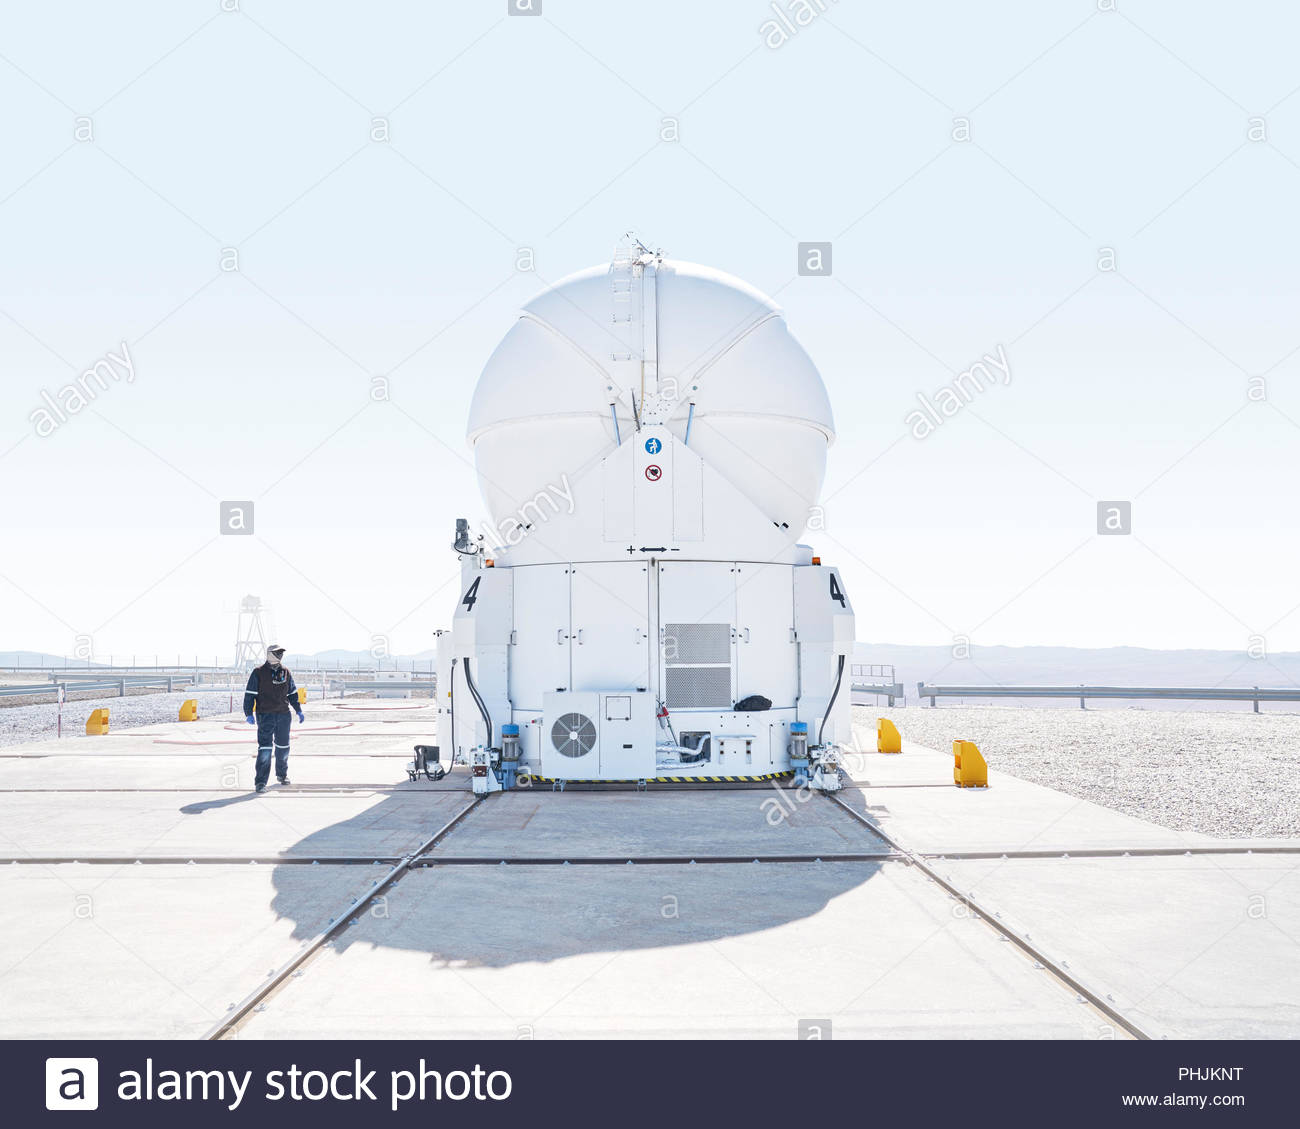 Scientist inspecting telescope at Paranal Observatory in Chile - Stock Image